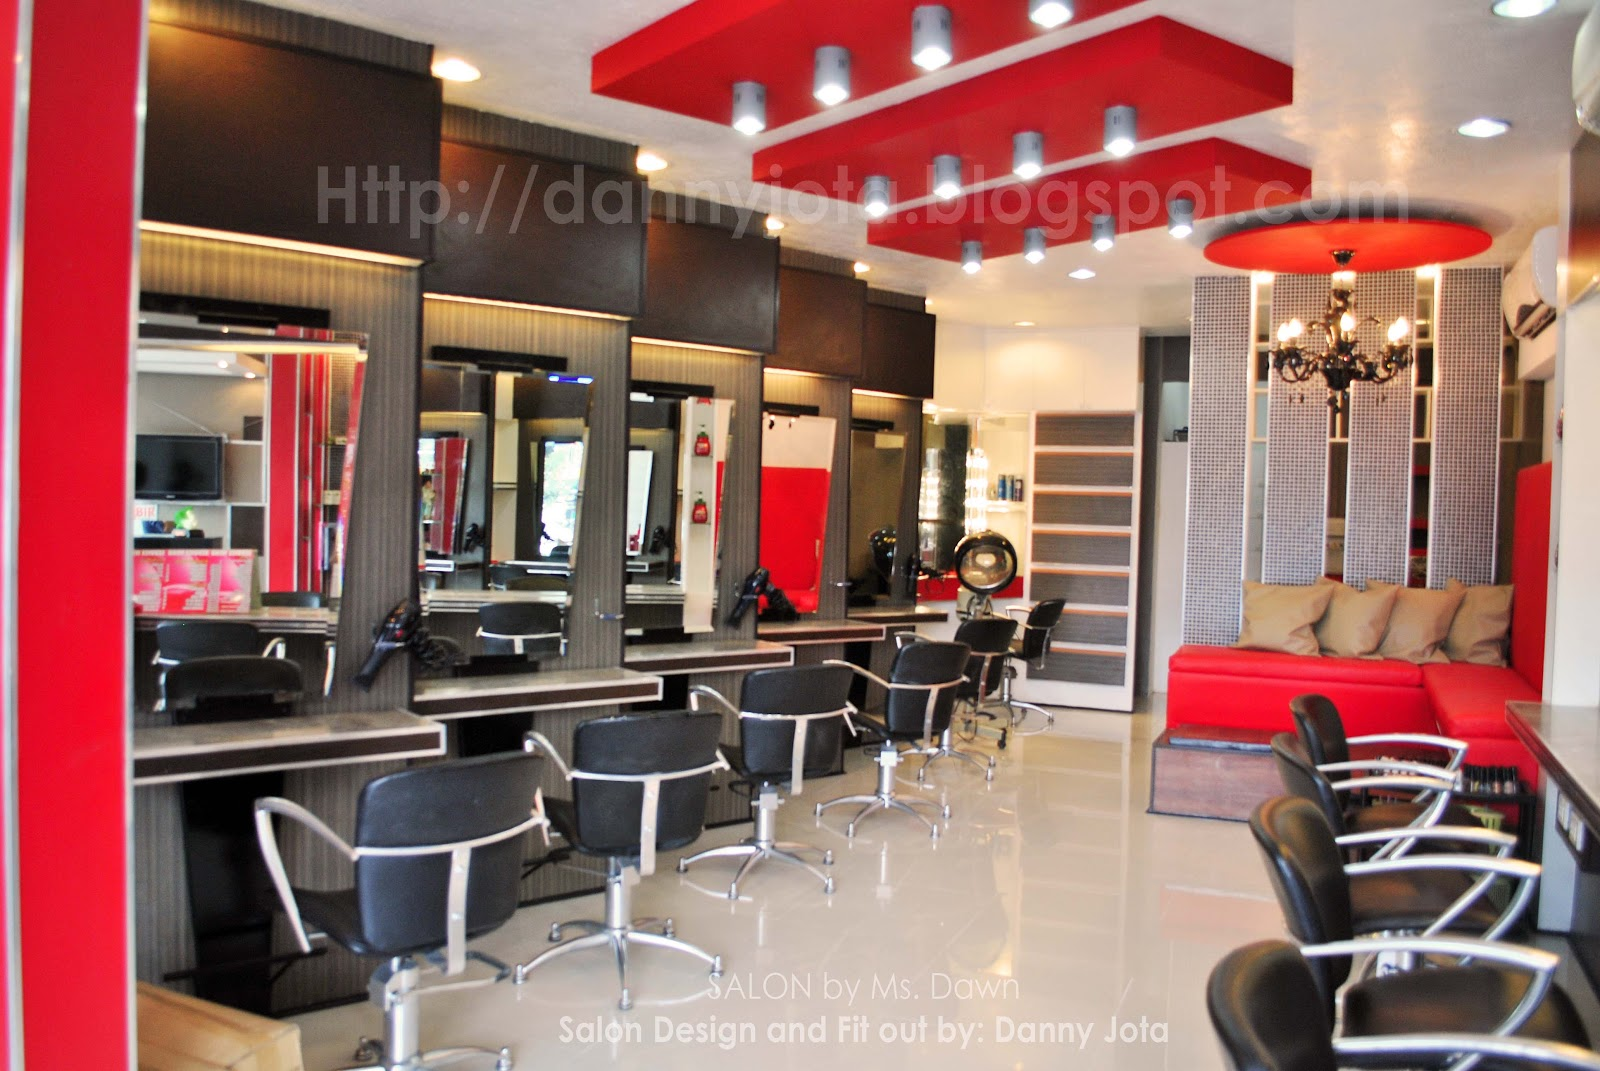 Danny torres jota djota designtech new salon design and for Photos salon design